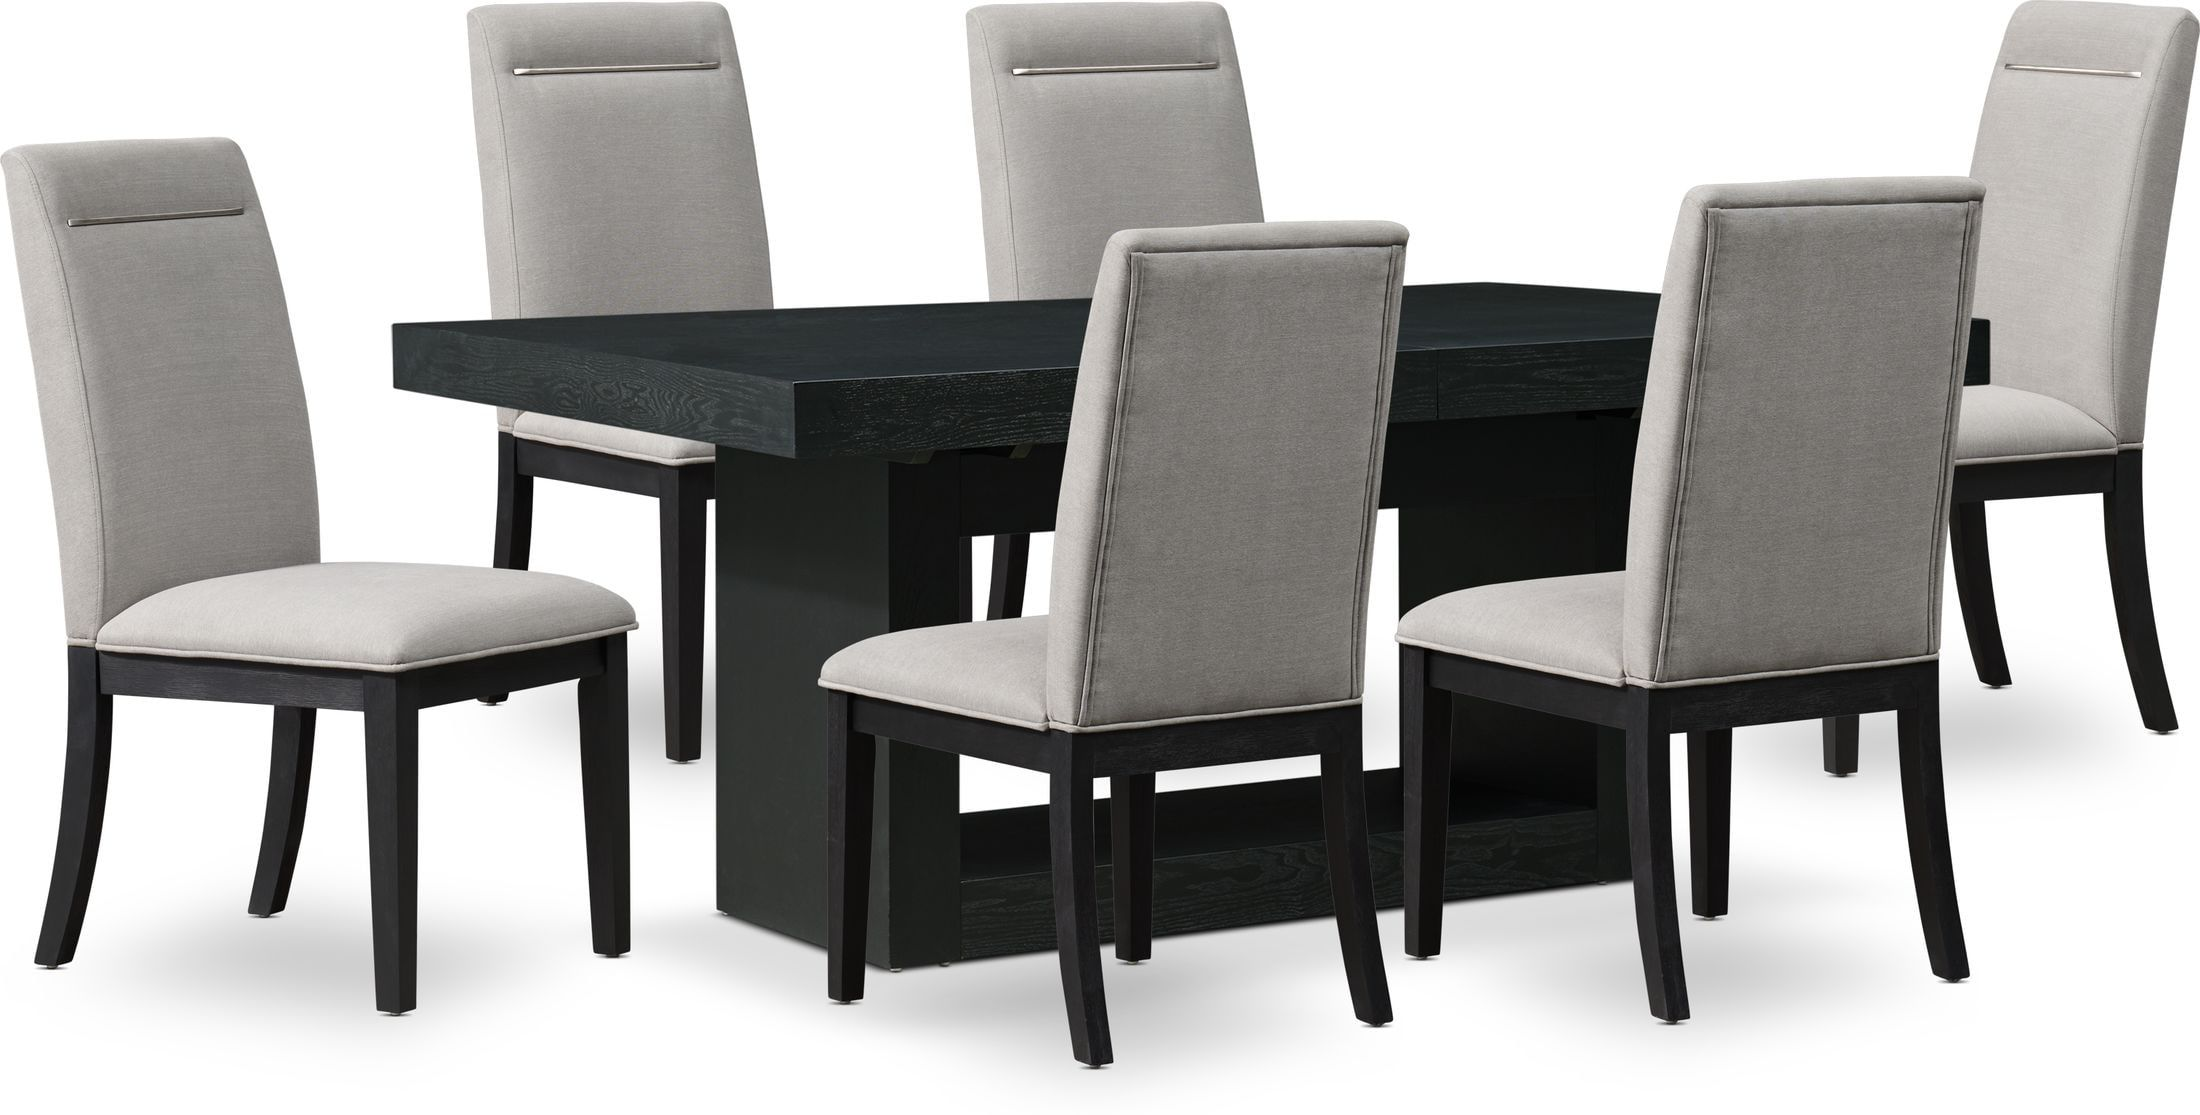 Banks Dining Table With 6 Chairs In 2021 Black Dining Room Table Contemporary Dining Table Contemporary Kitchen Tables Kitchen chairs set of 6